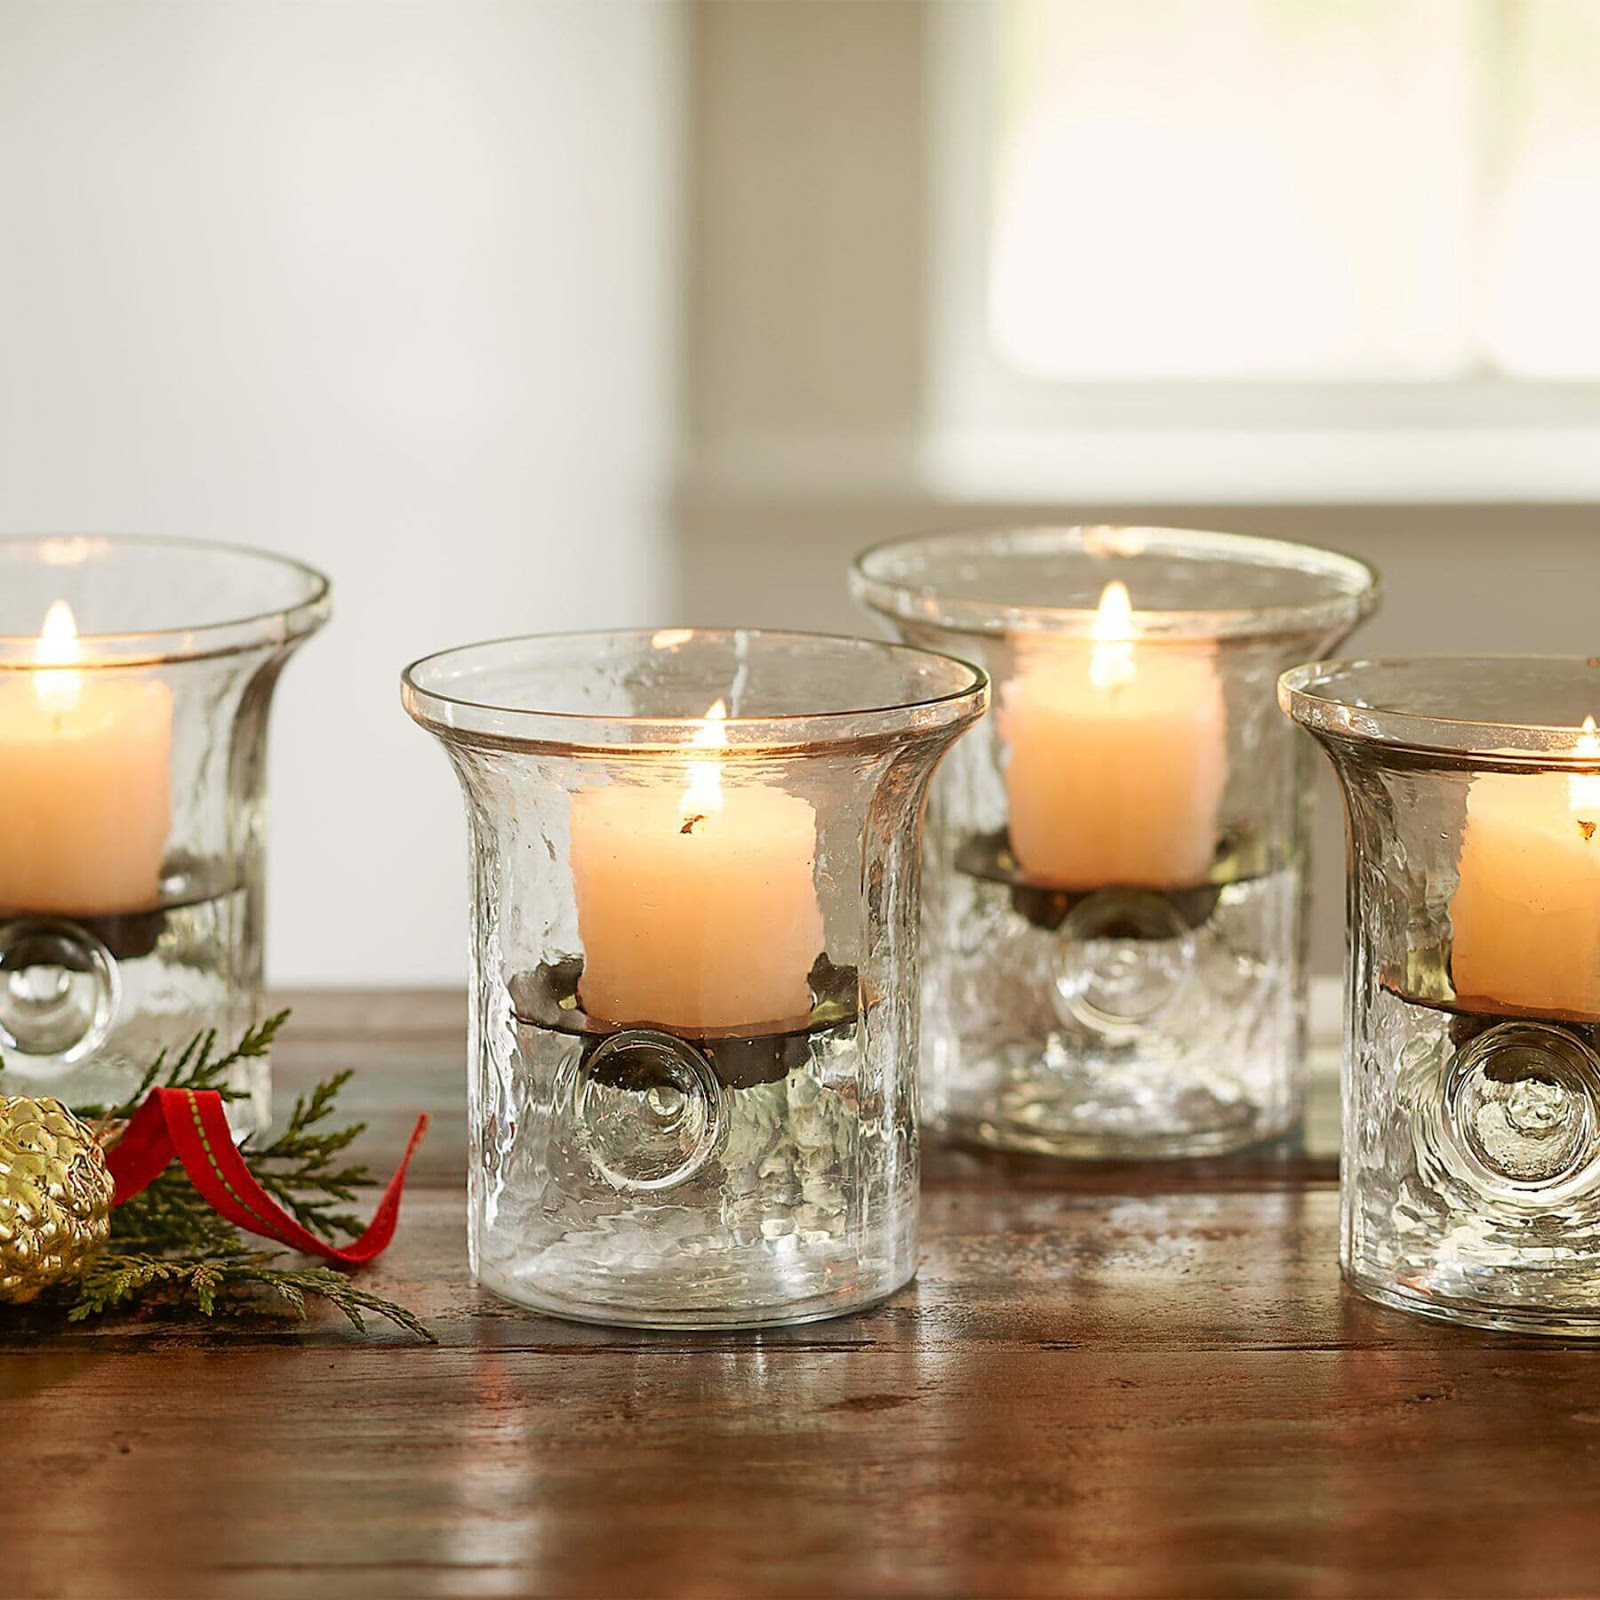 Four Blown Glass Hurricanes with lit candles.